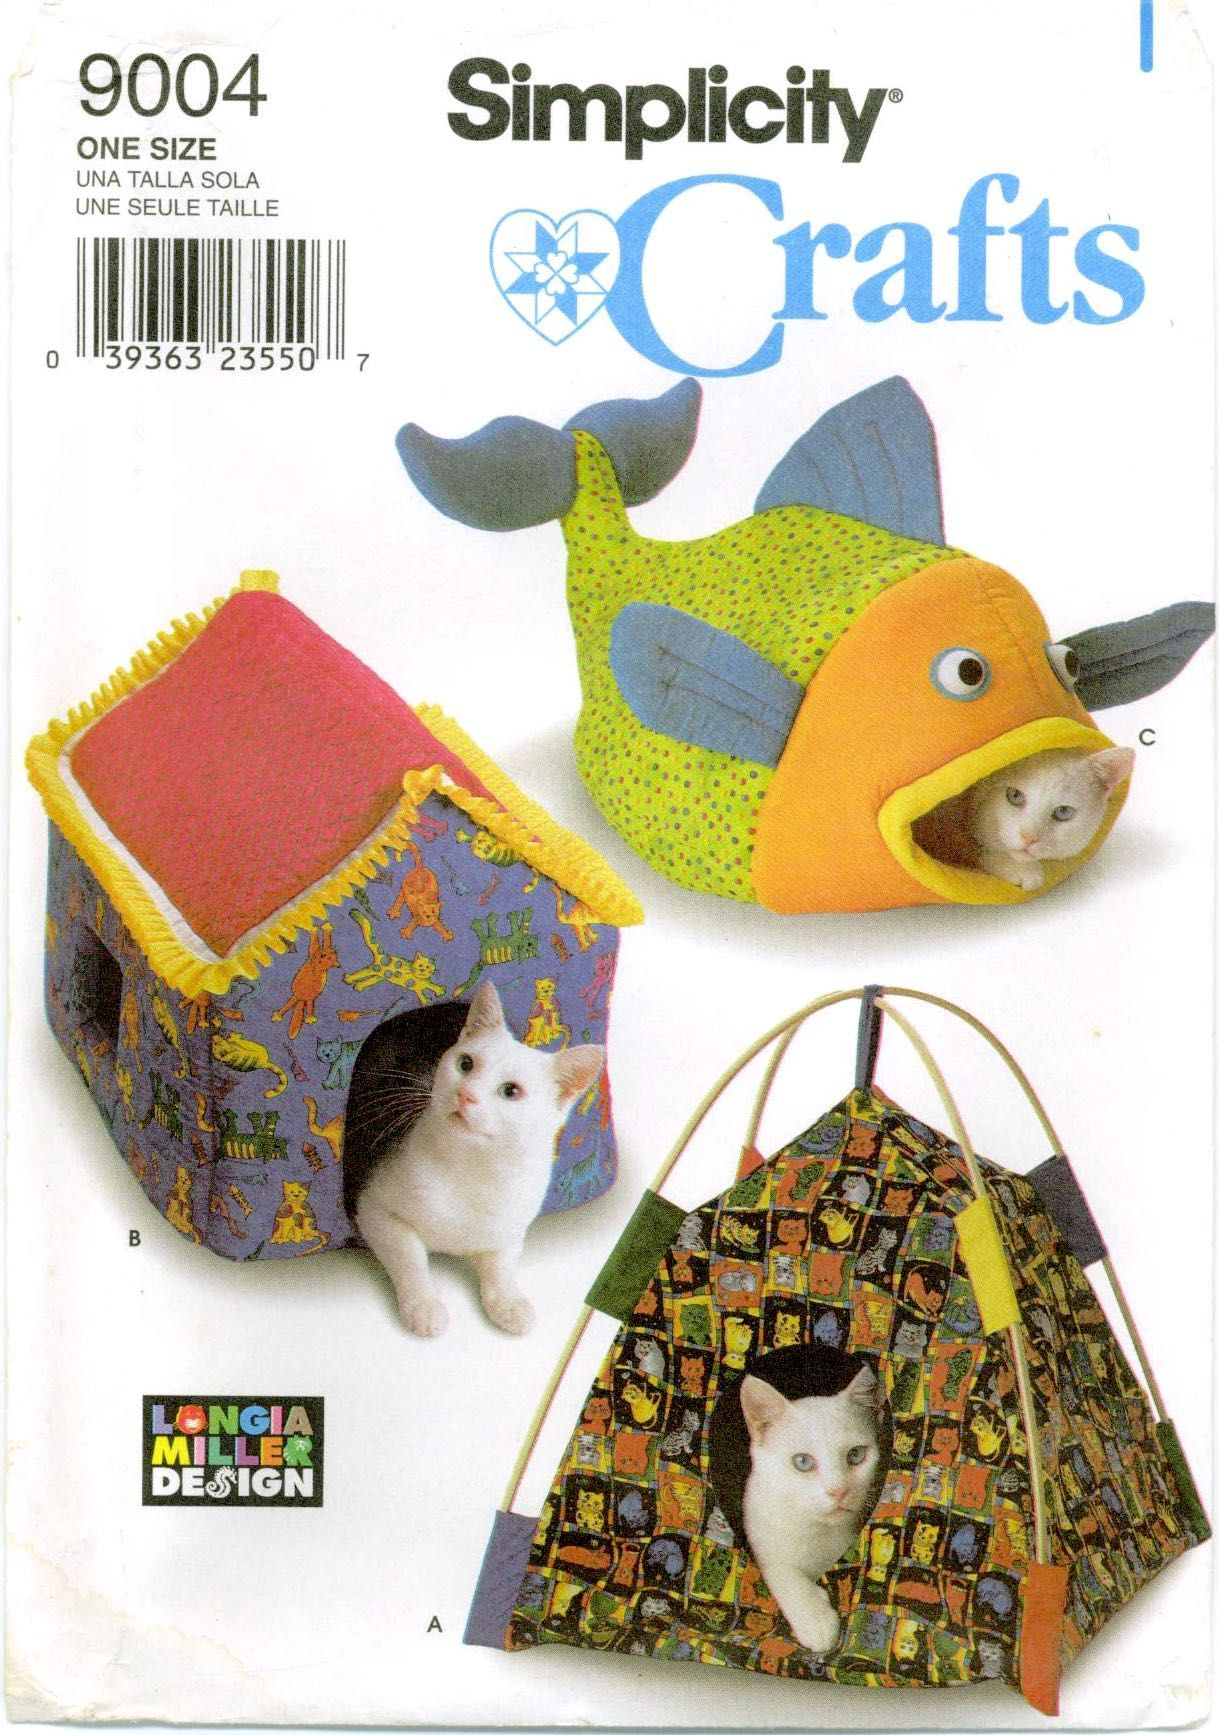 Simplicity Crafts 9004 CAT BEDS Fish House Tent Sewing